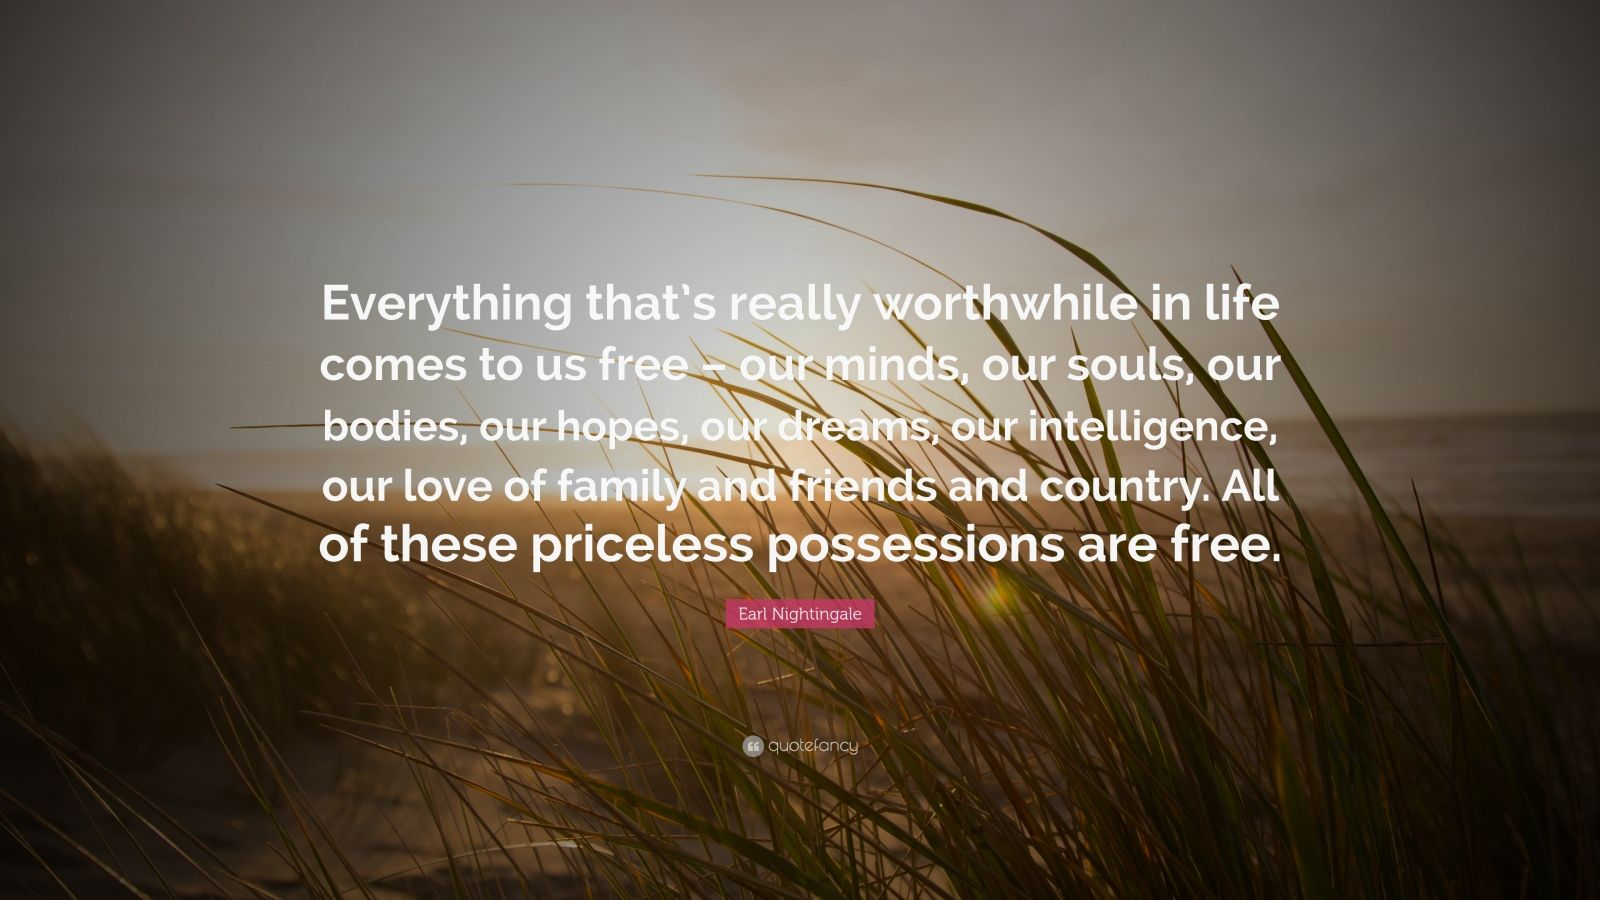 """Earl Nightingale Quote: """"Everything that's really worthwhile in life comes to us free – our minds, our souls, our bodies, our hopes, our dreams, our intelligence, our love of family and friends and country. All of these priceless possessions are free."""""""